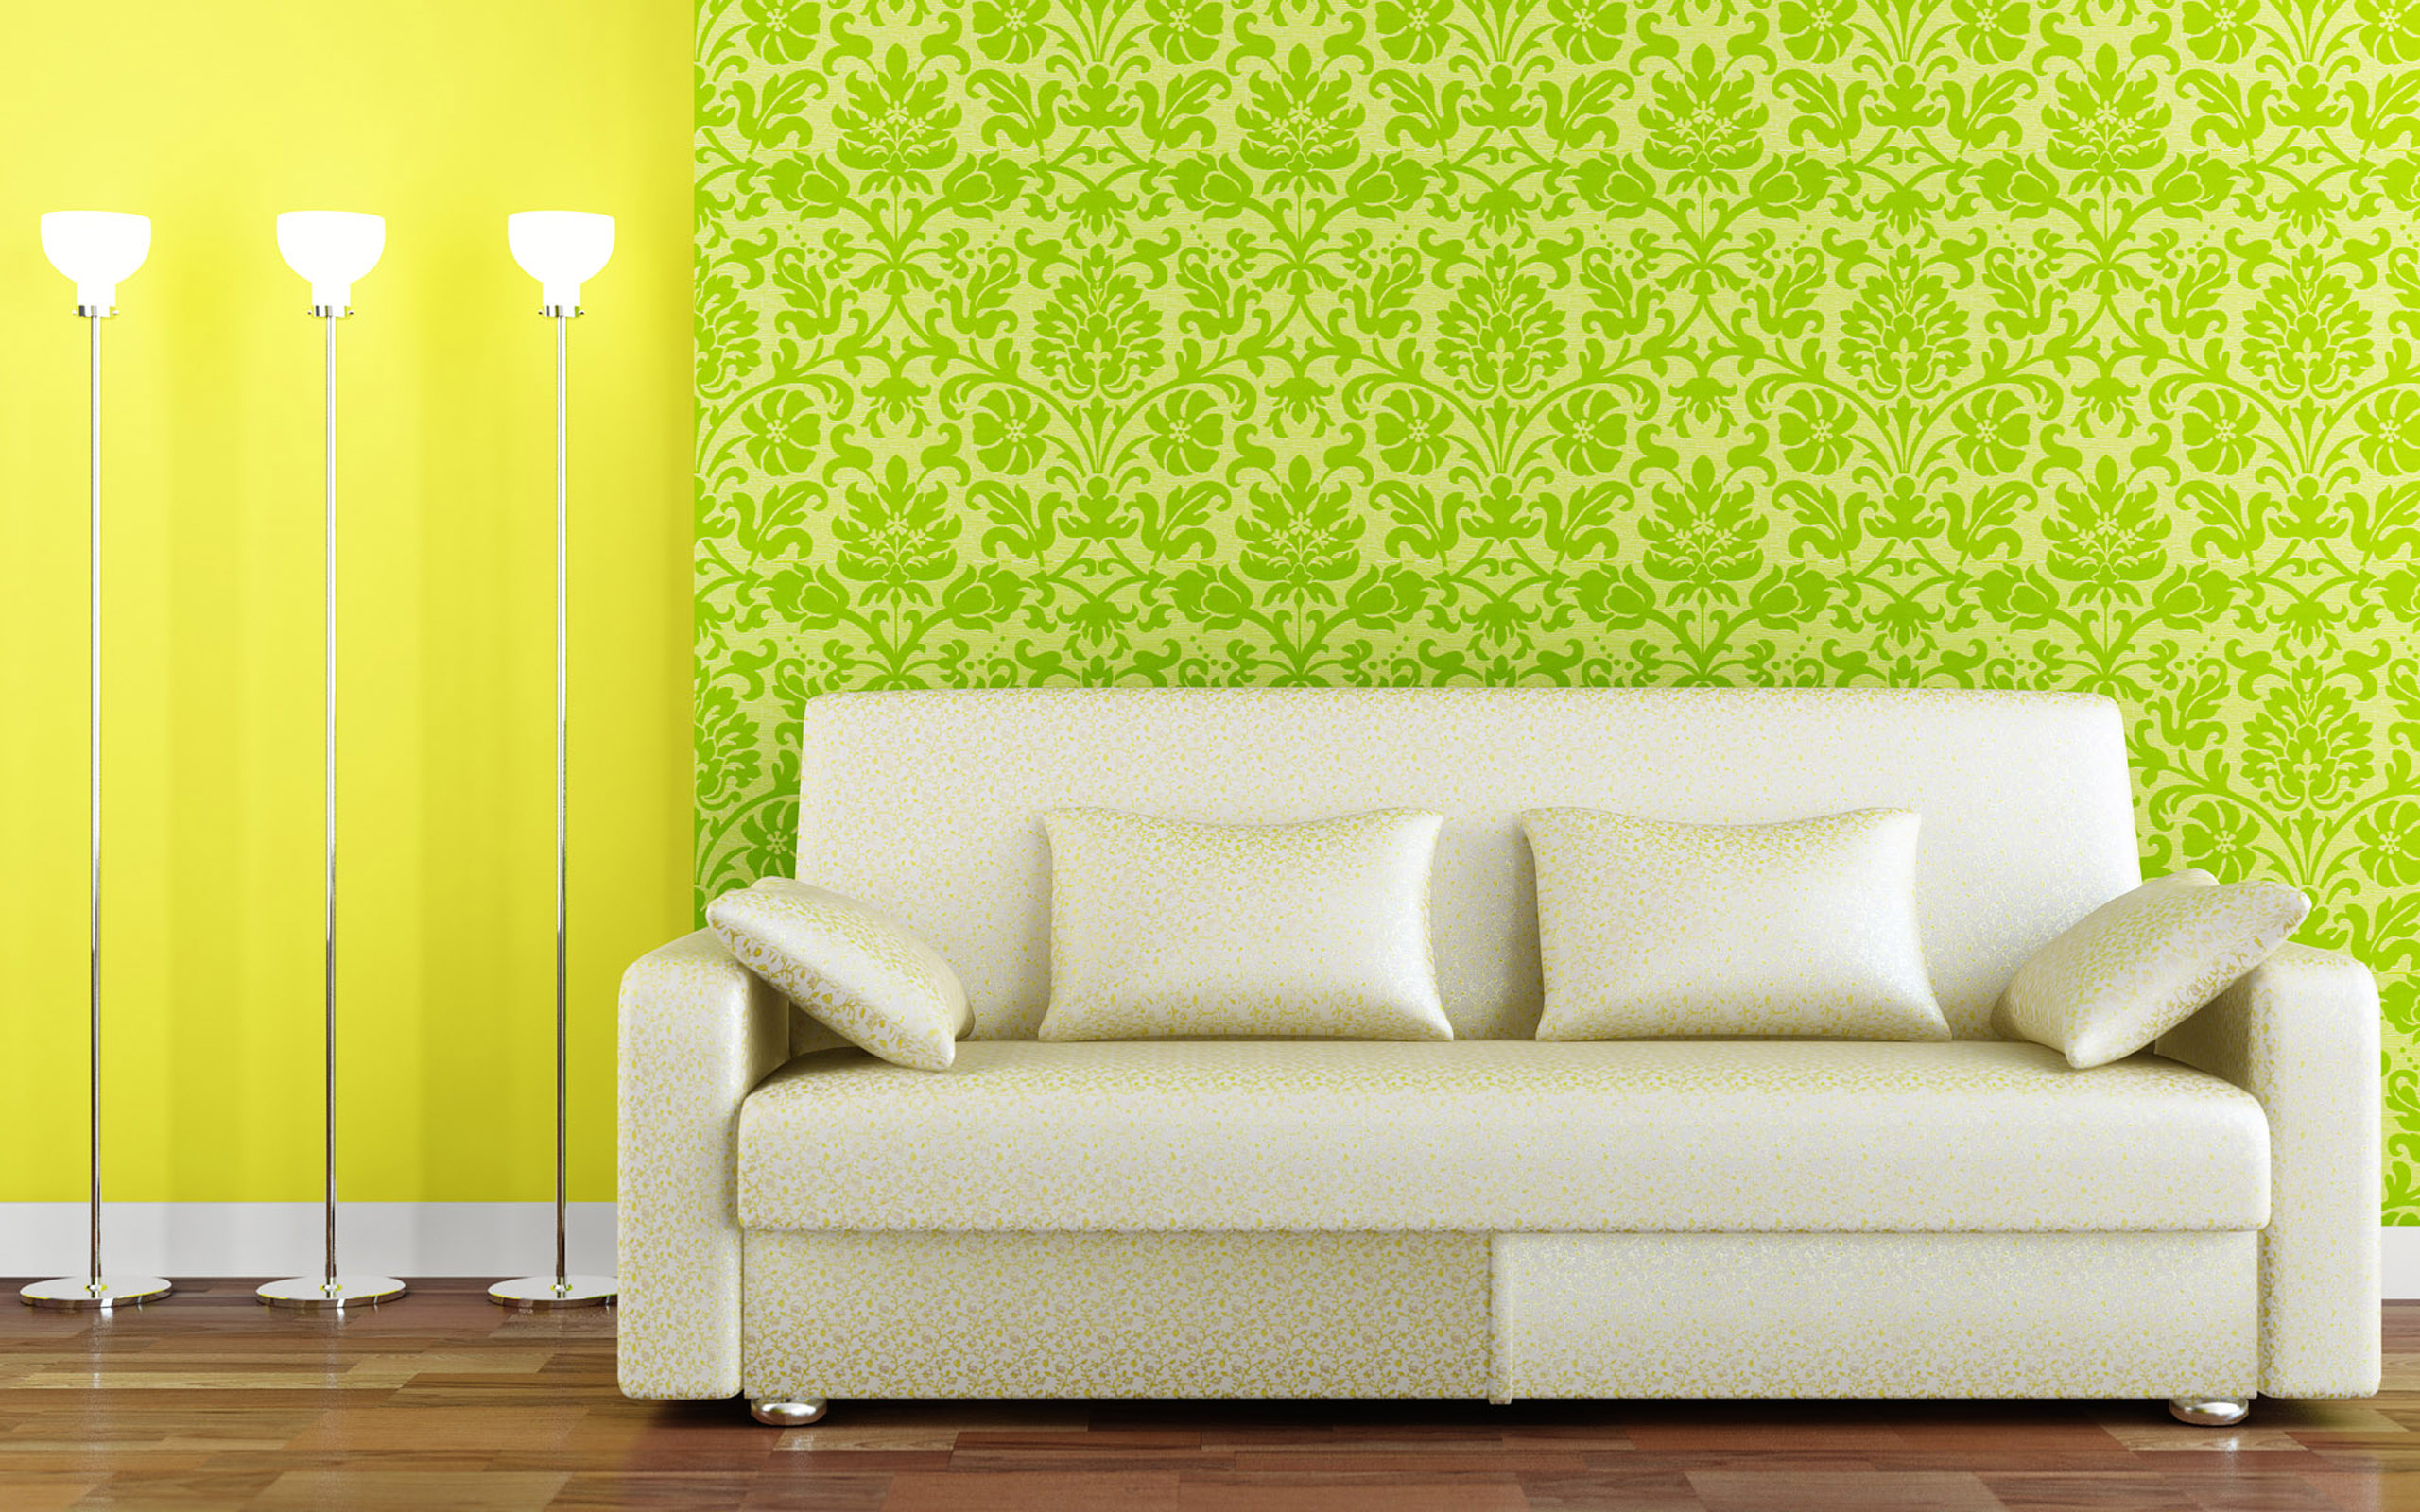 green colaborate with yellow